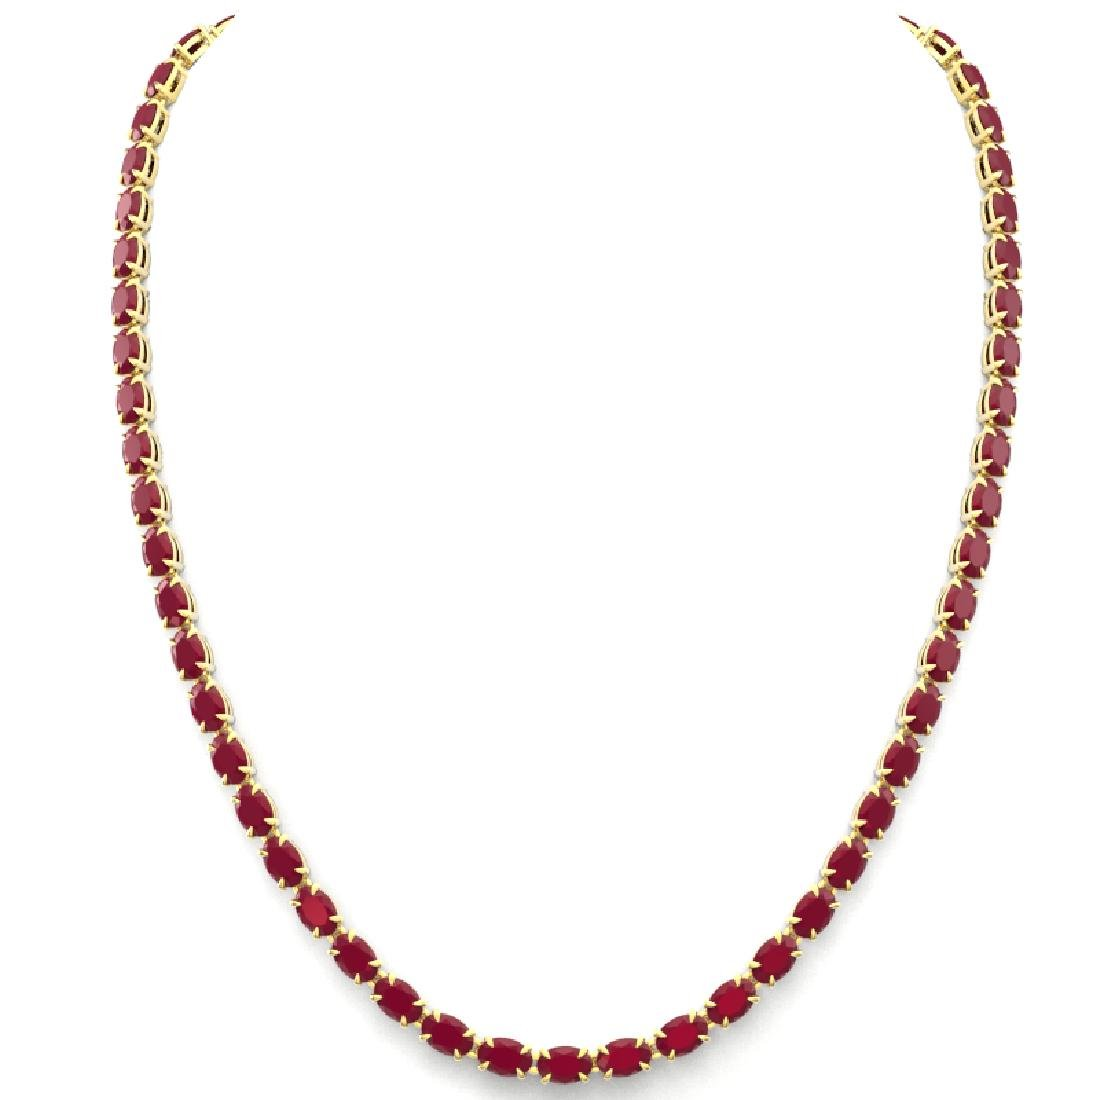 40 CTW Ruby Eternity Tennis Necklace 14K Yellow Gold - 3